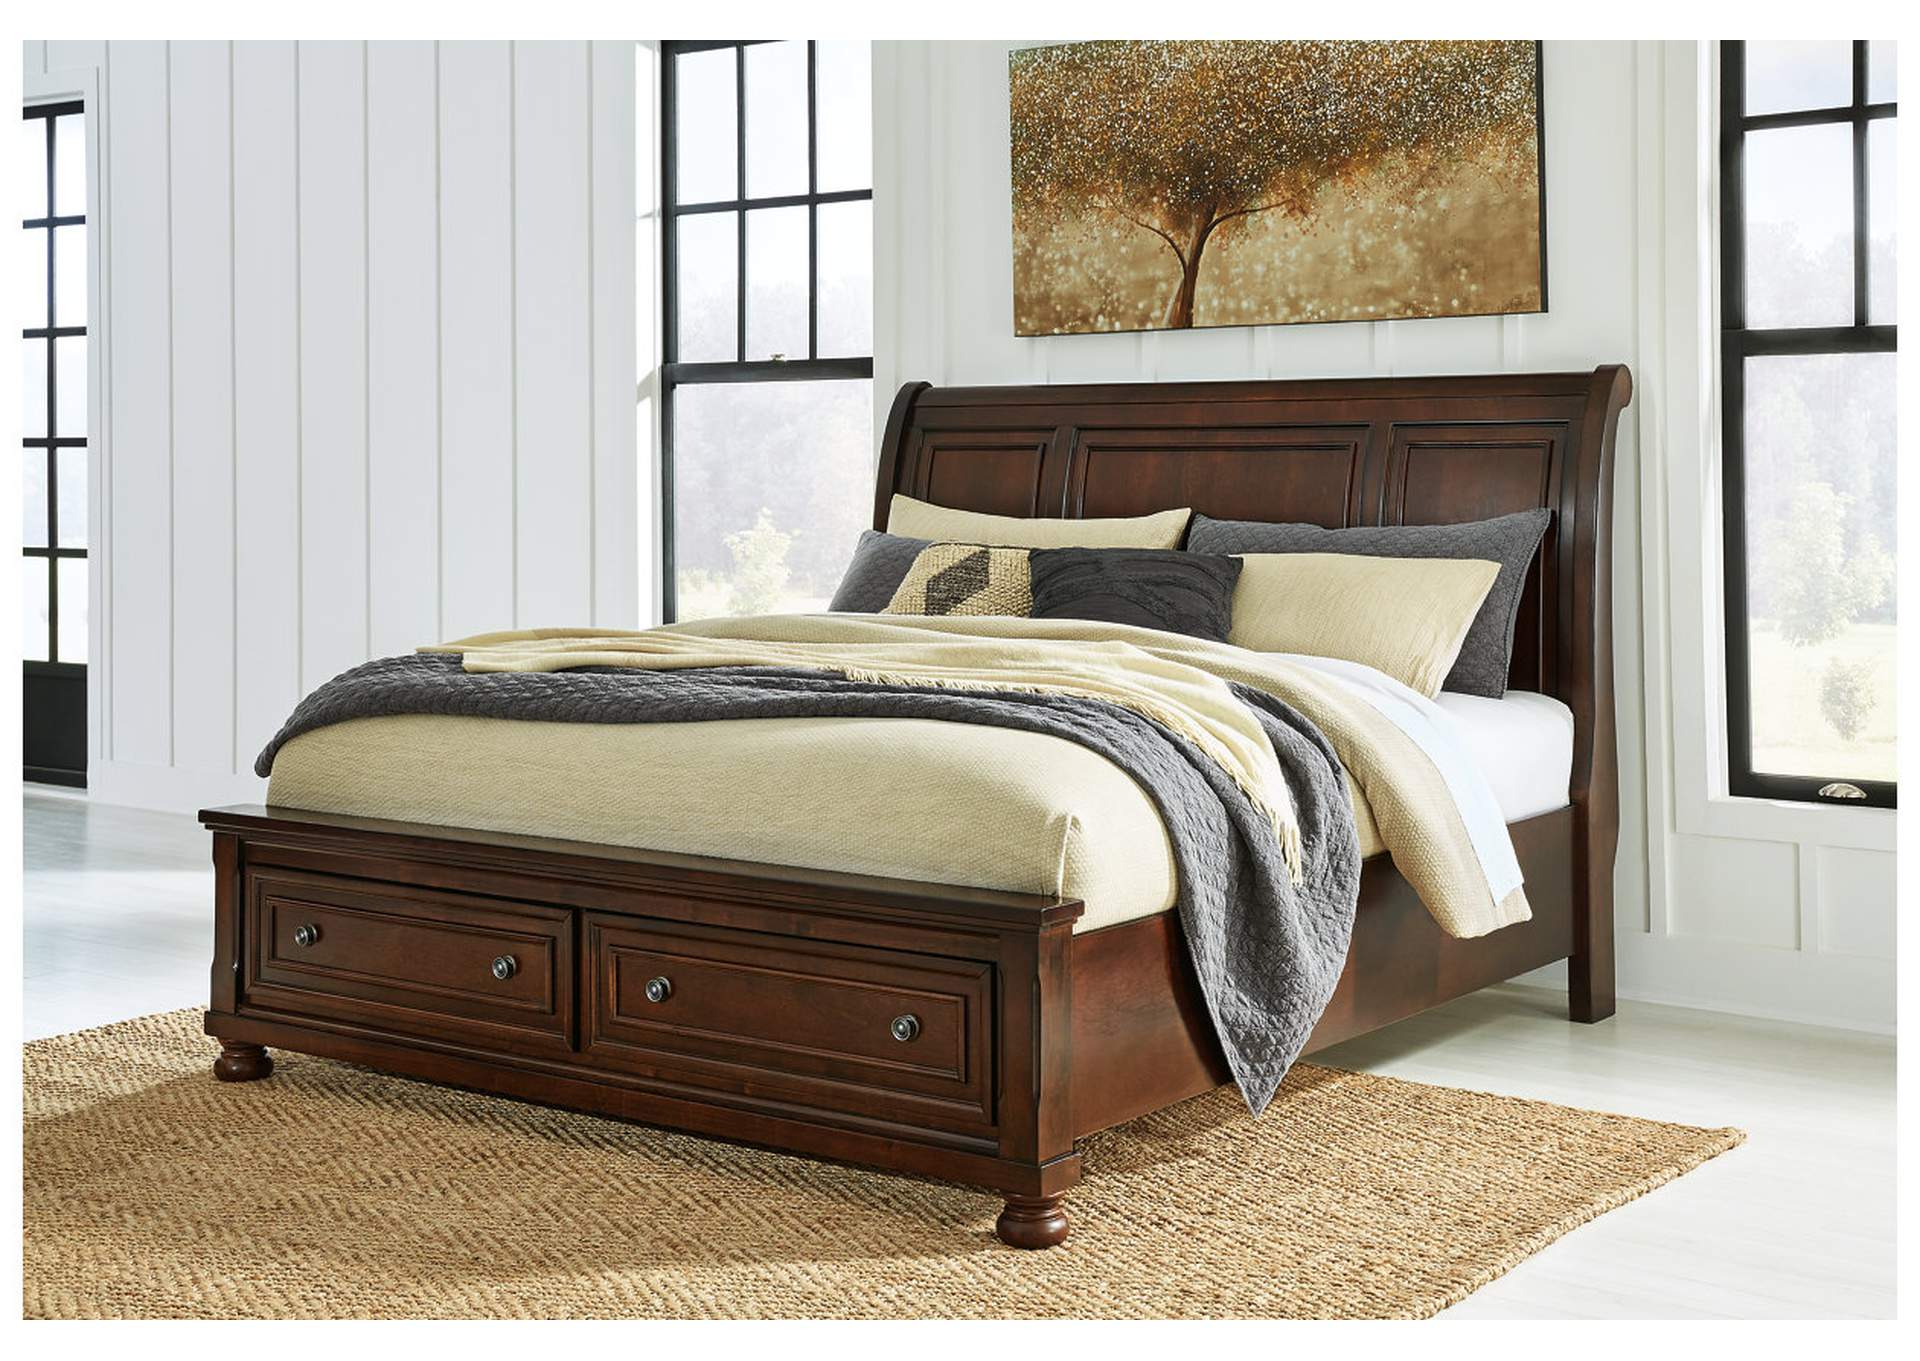 Porter Queen Sleigh Storage Bed frame